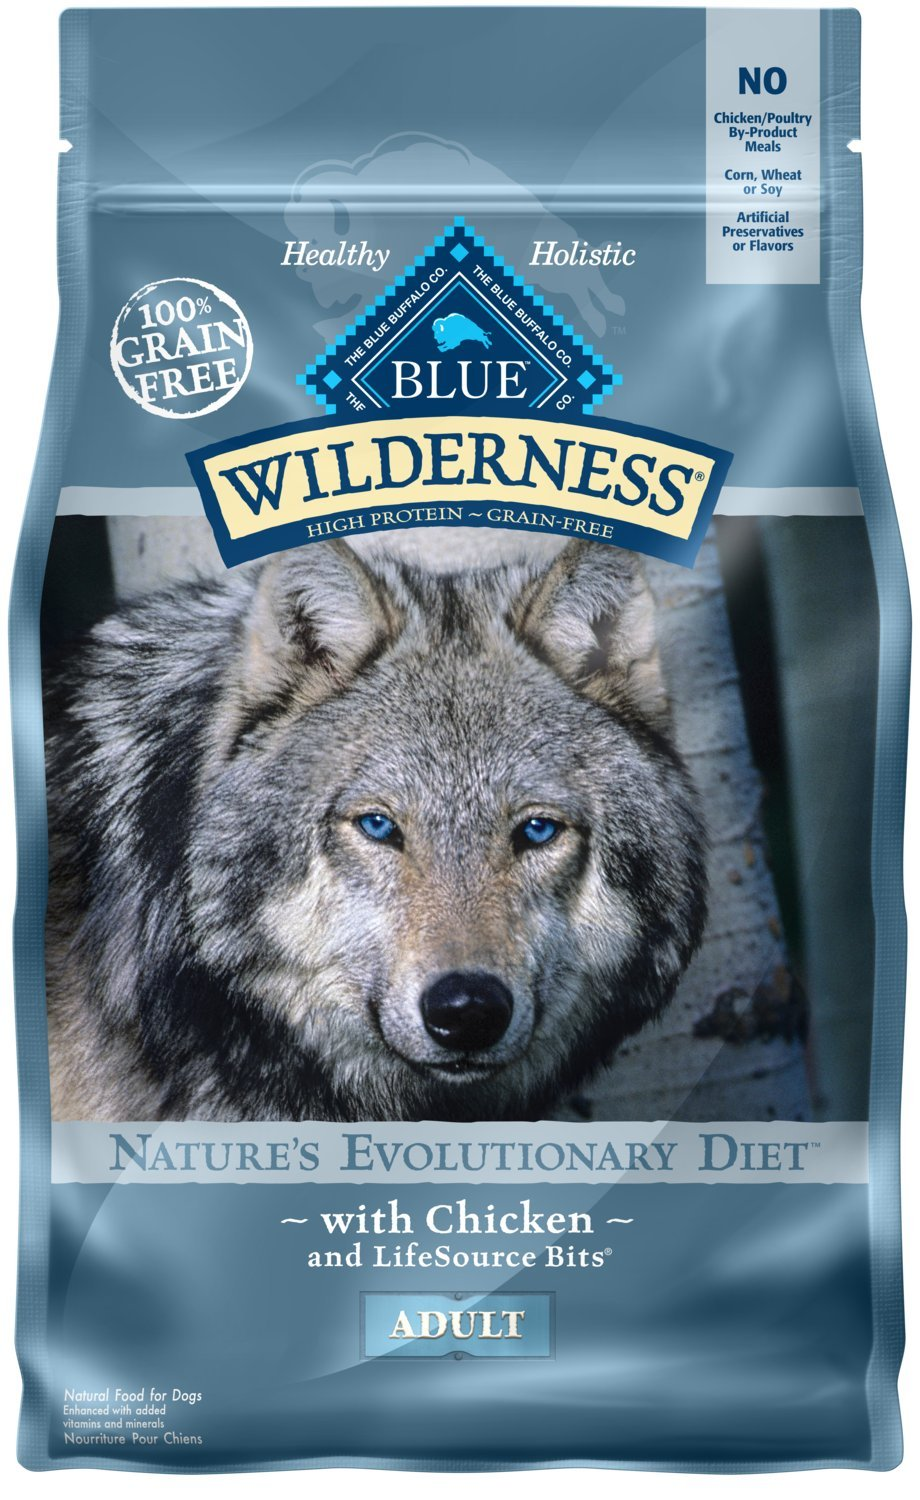 2.Blue Buffalo Wilderness High Protein Grain-Free Natural Adult Dry Dog Food